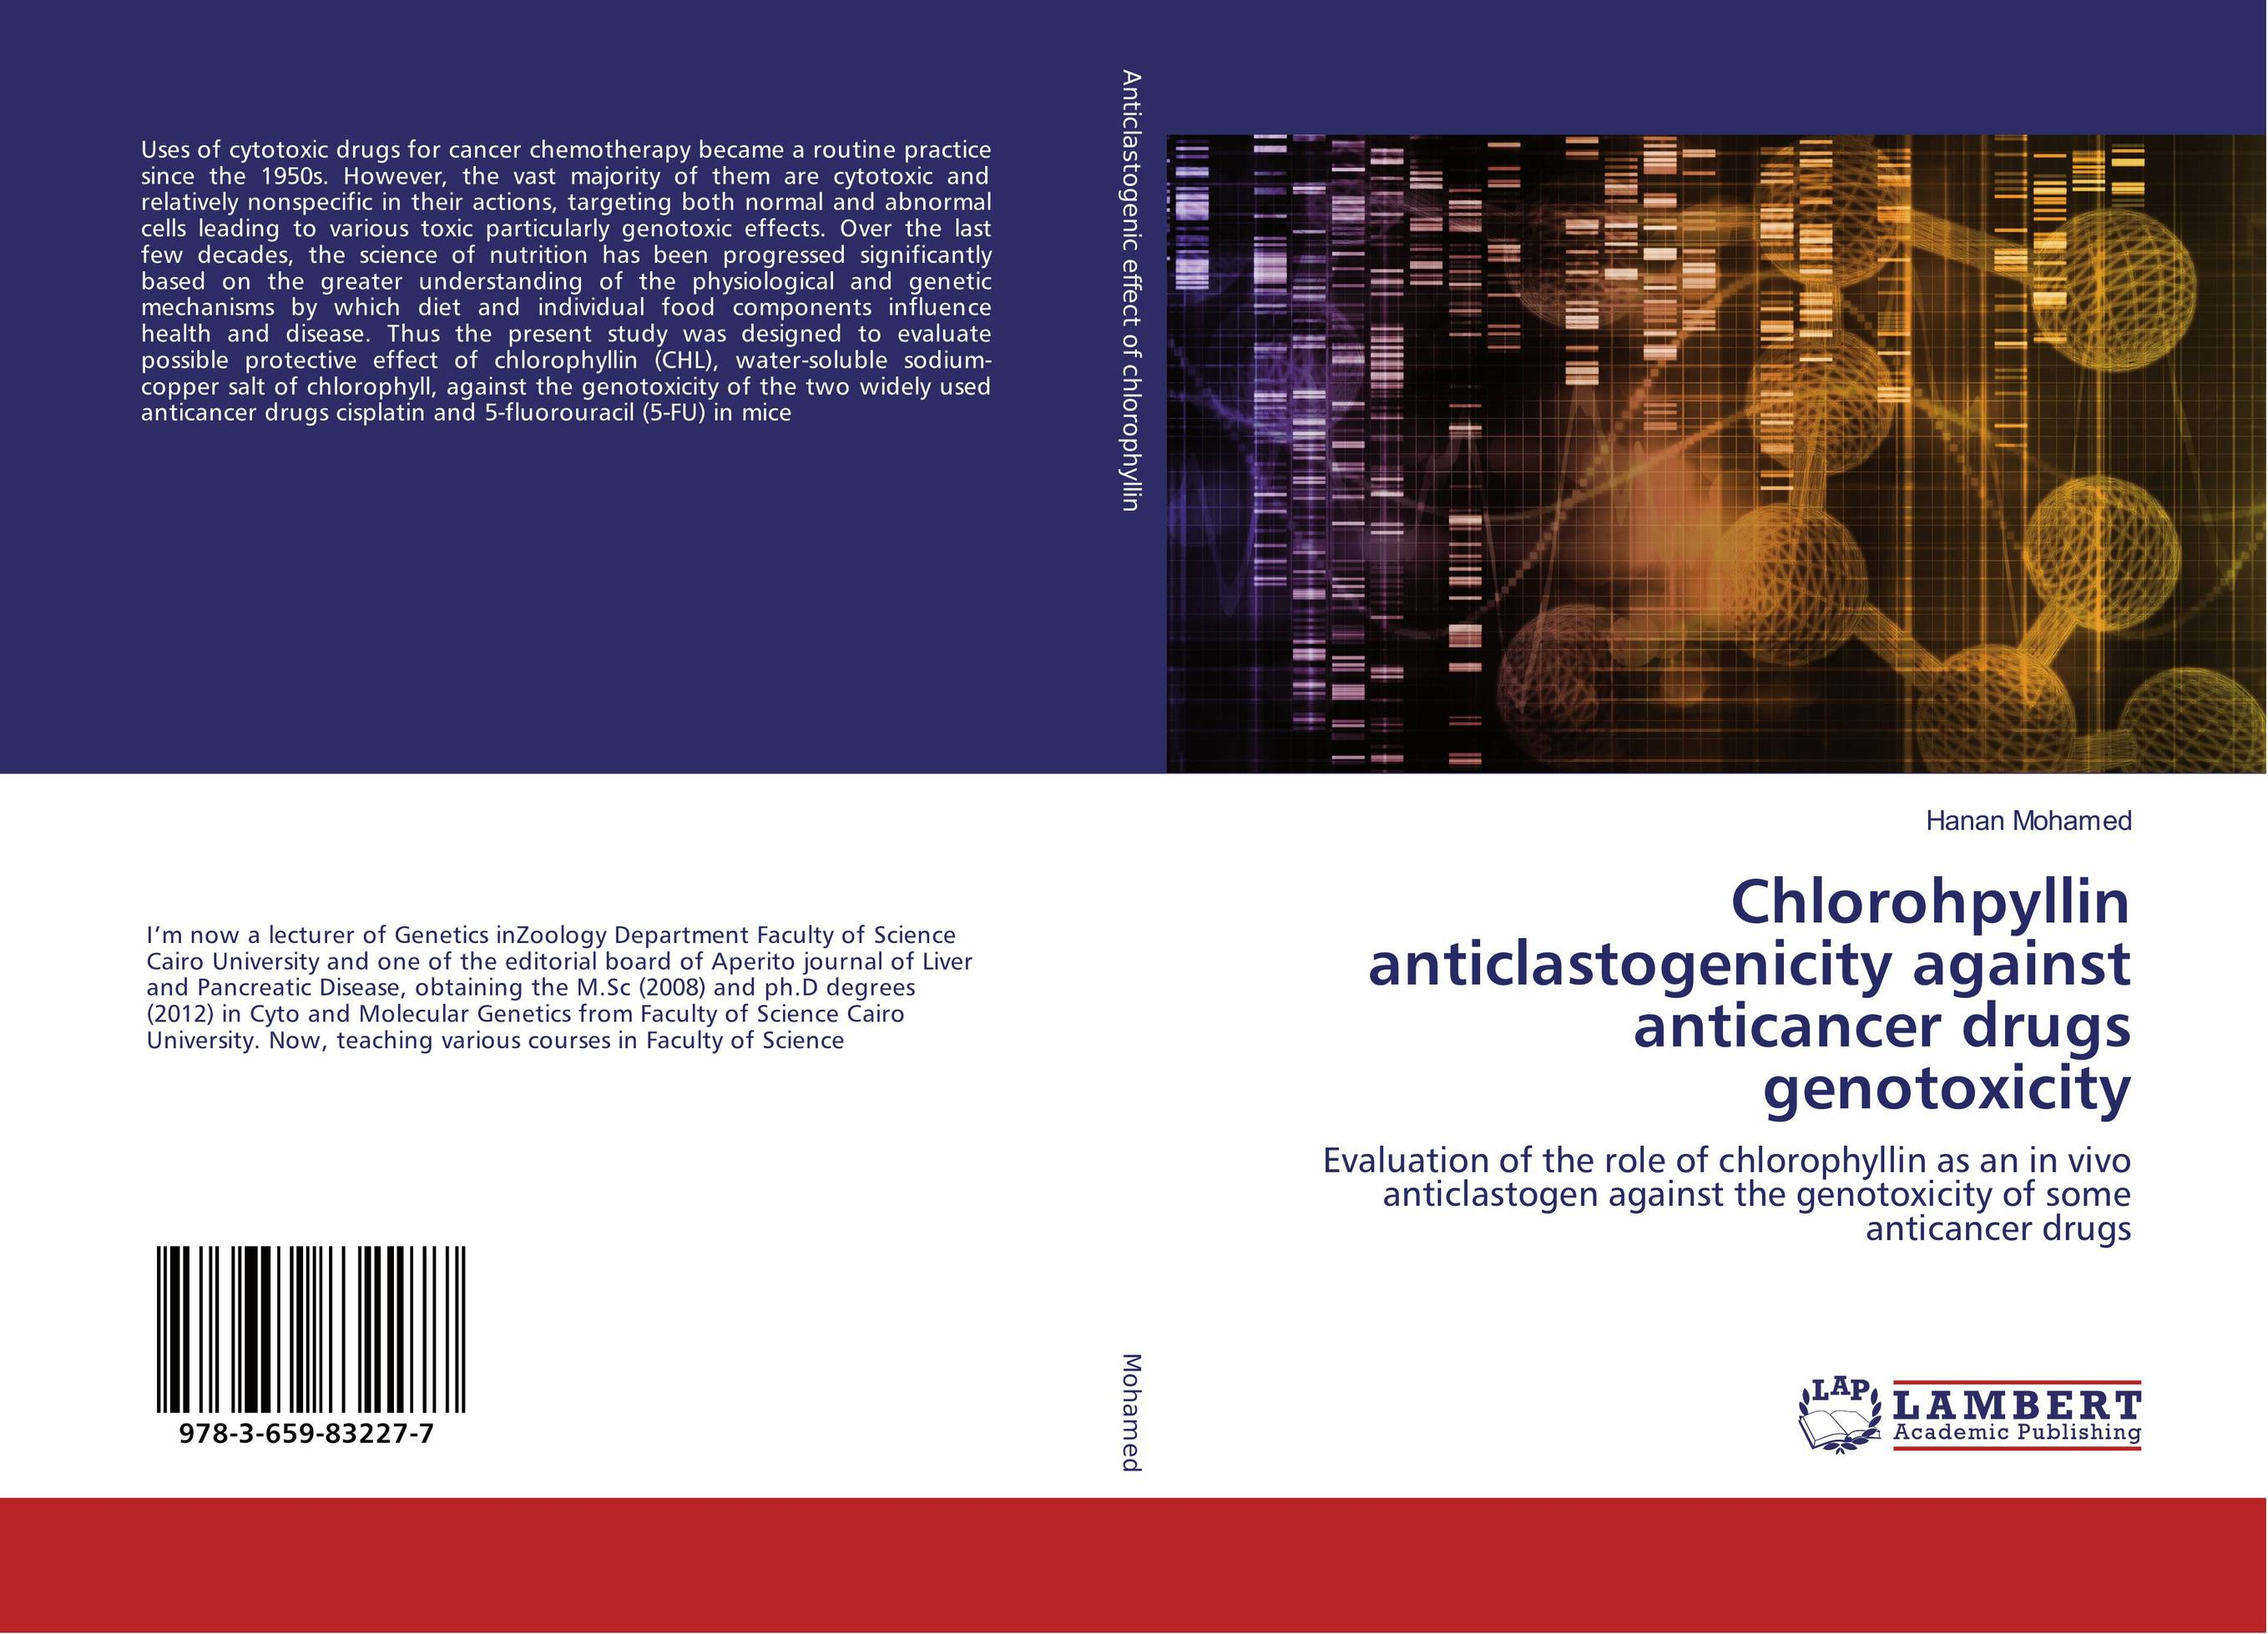 Chlorohpyllin anticlastogenicity against anticancer drugs genotoxicity effect of depression and drugs on sialometry and sialochemistry